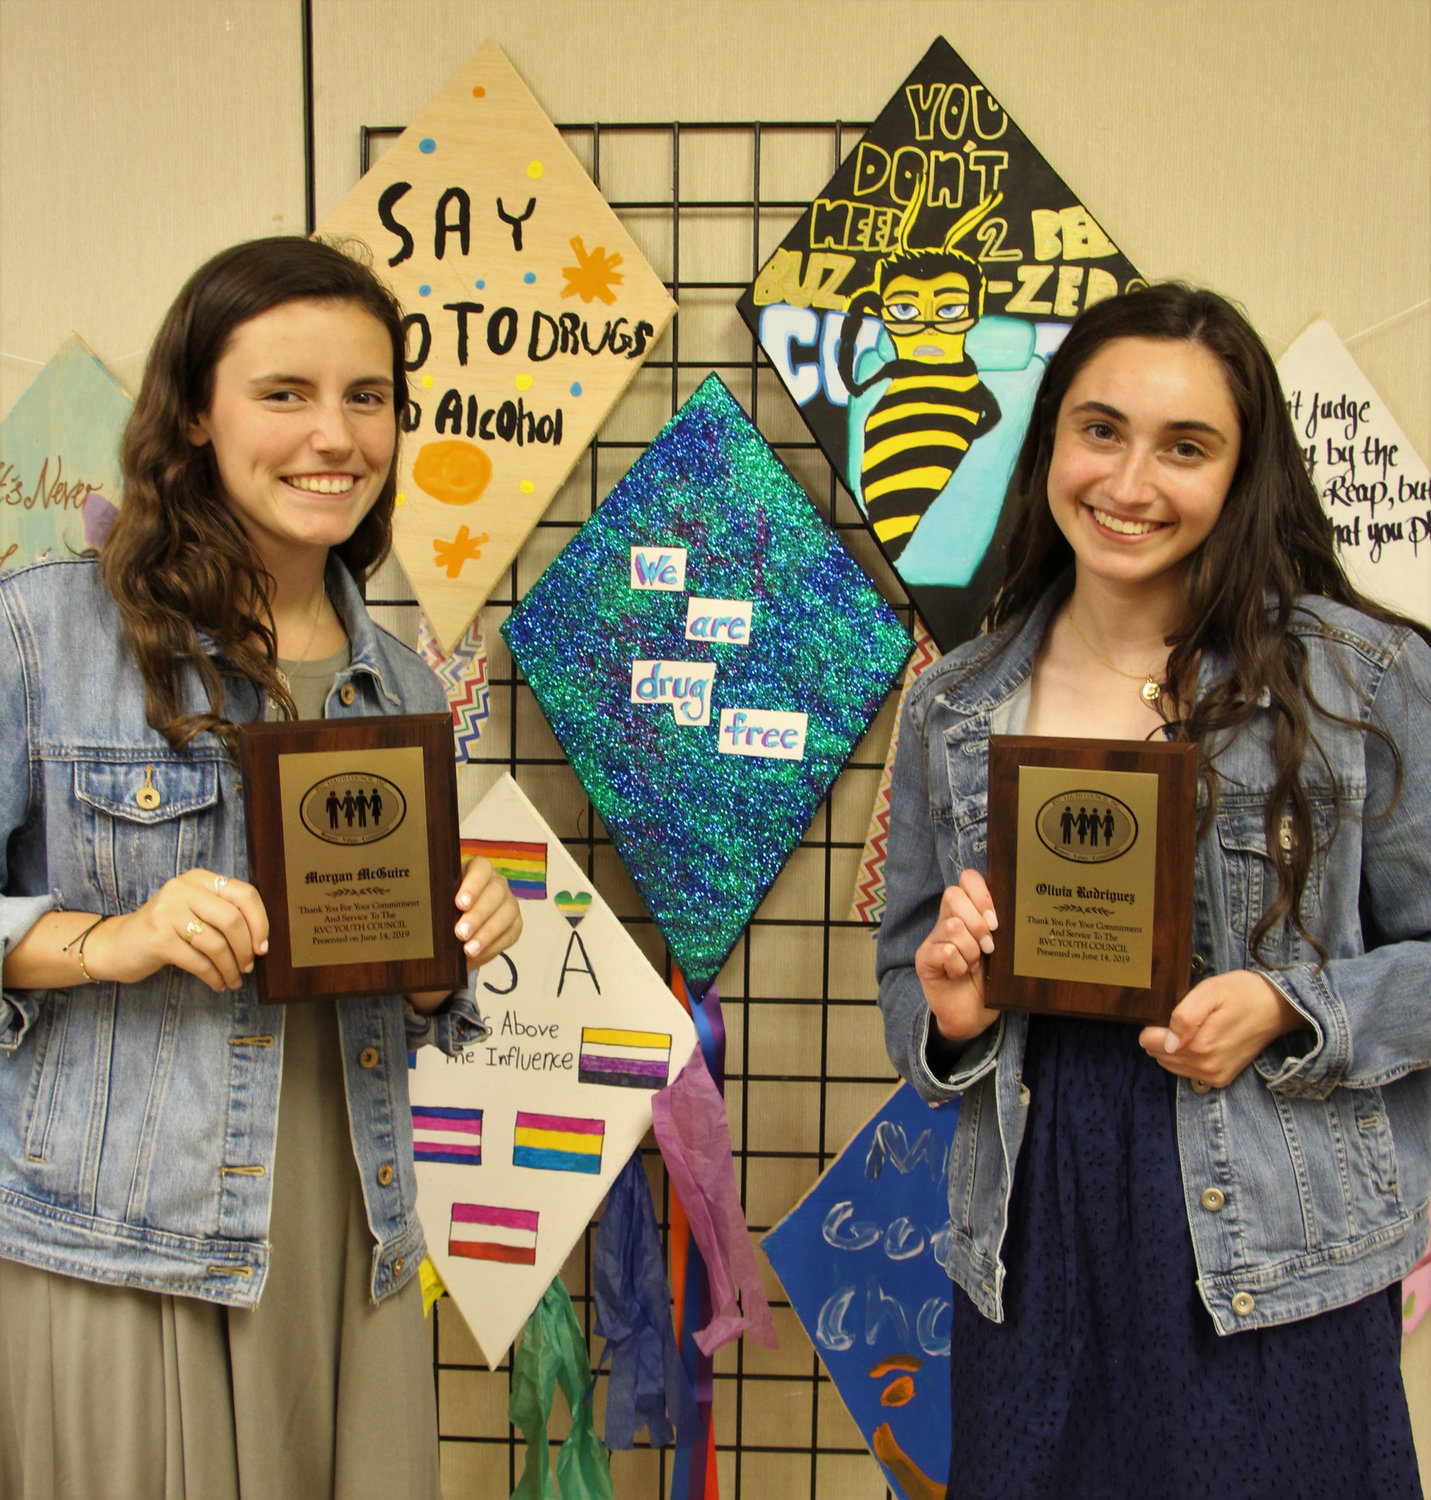 Morgan McGuire and Olivia Rodriguez were thanked for their service to the Youth Council.